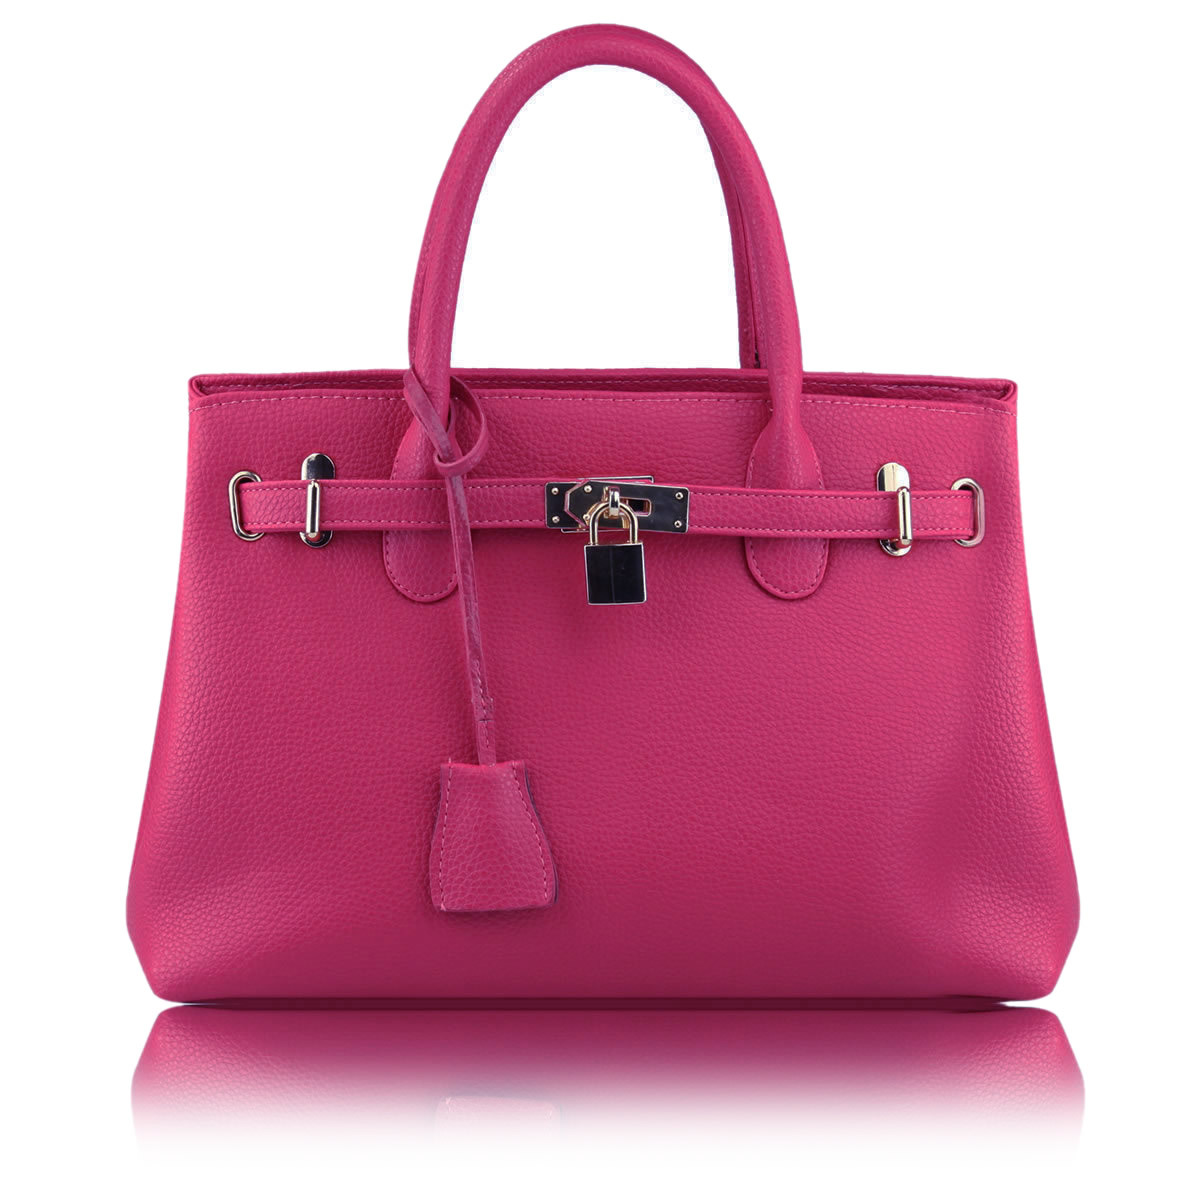 Handbags for women-the most important accessory in today's world